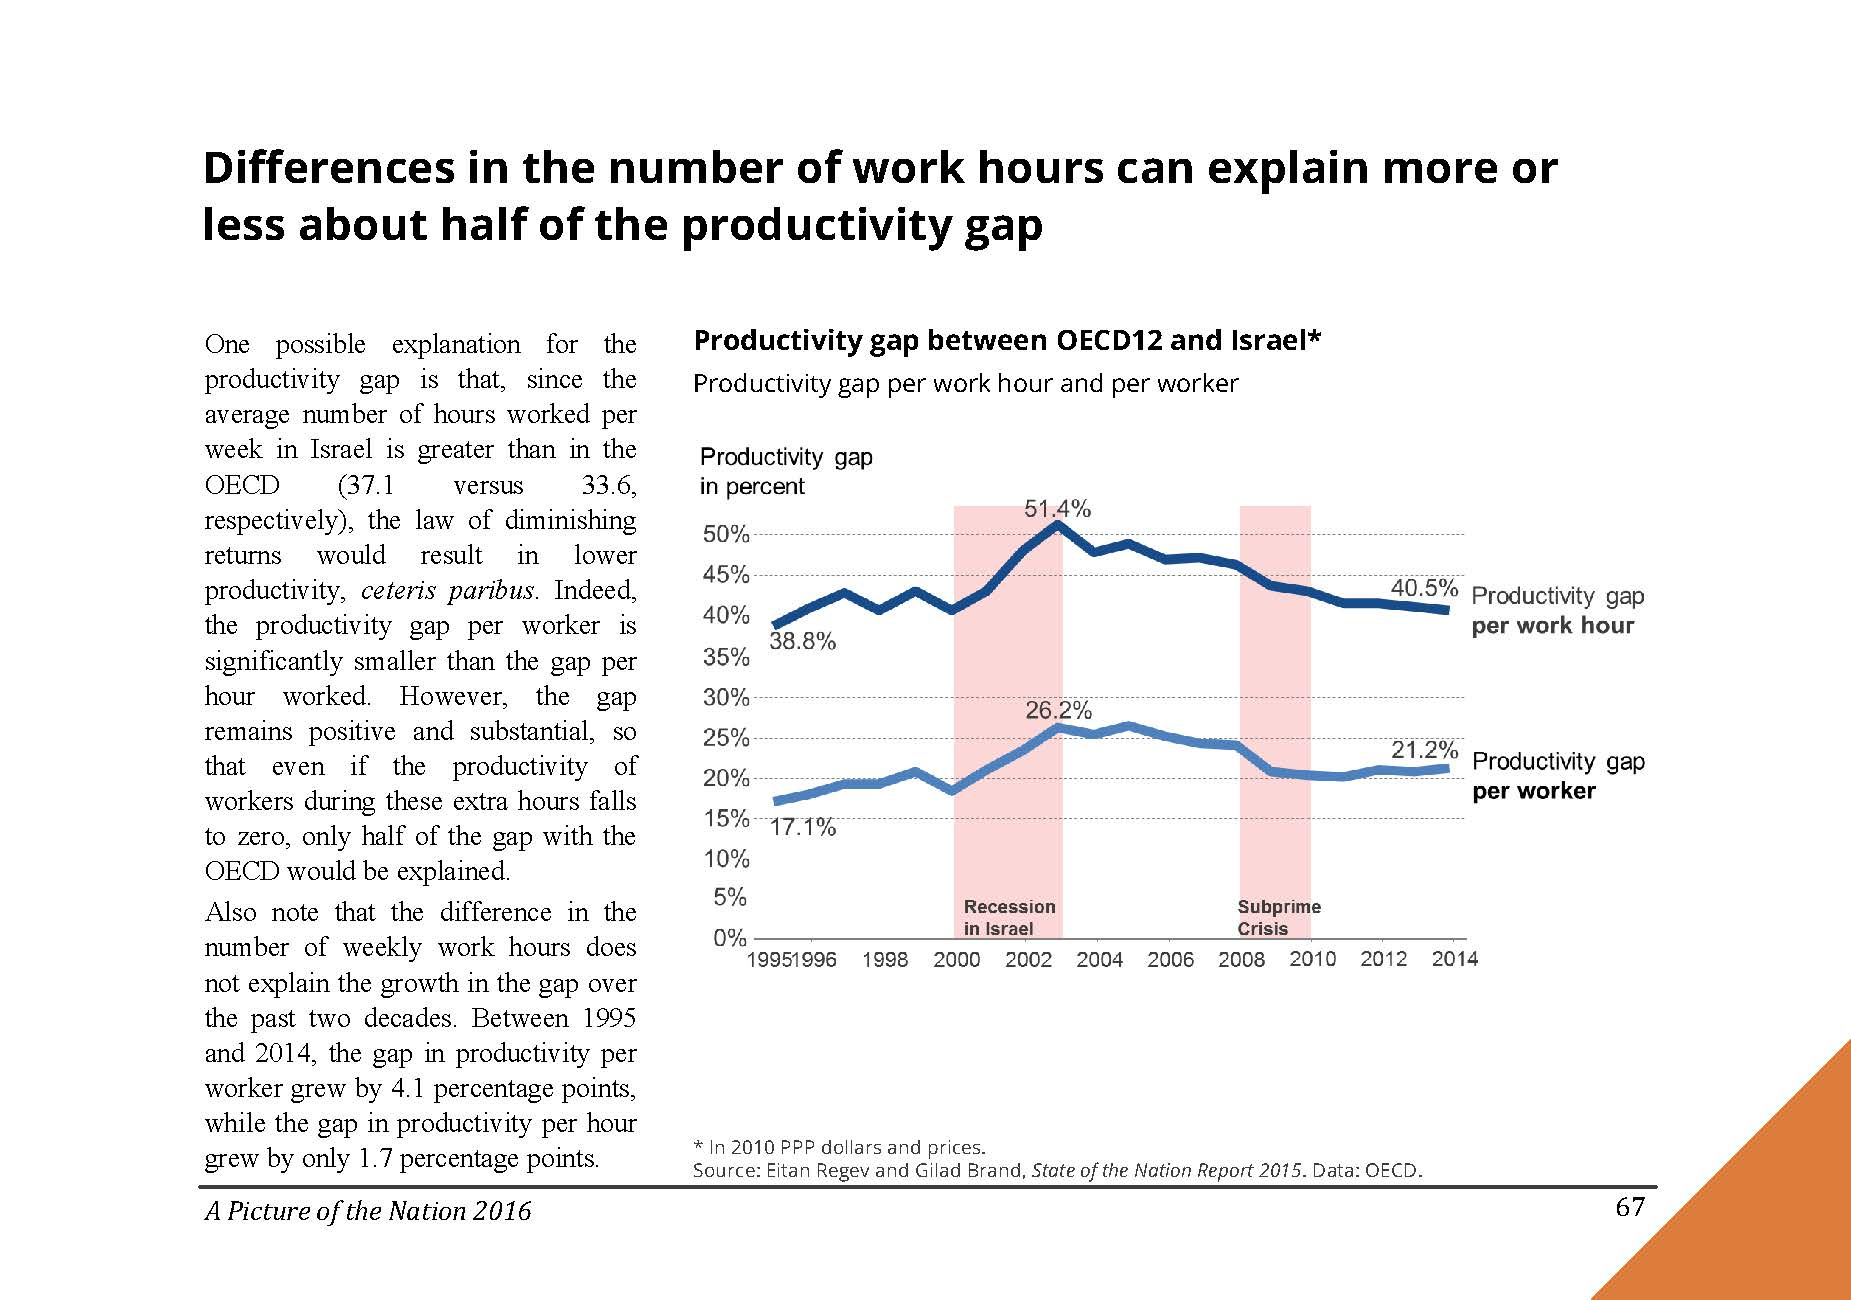 Differences in the number of work hours can explain more or less about half of the productivity gap between Israel and the OECD